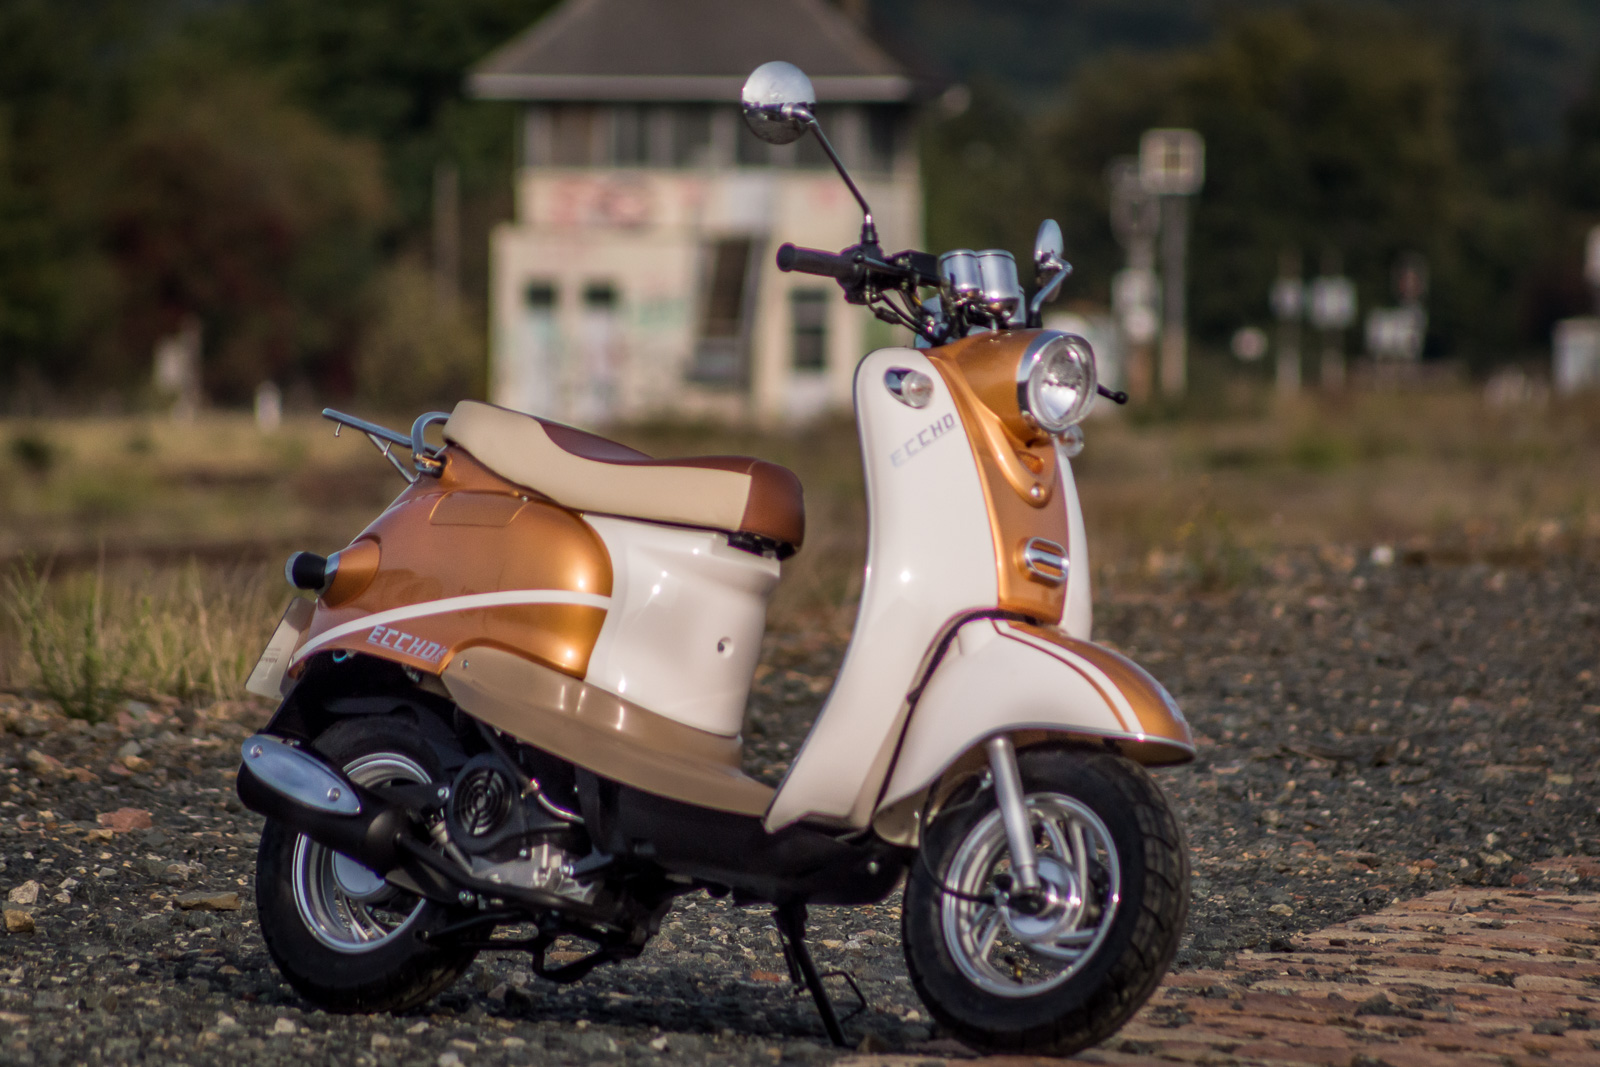 SCOOTER-50-ECCHO-RETRO-GOLDER-03